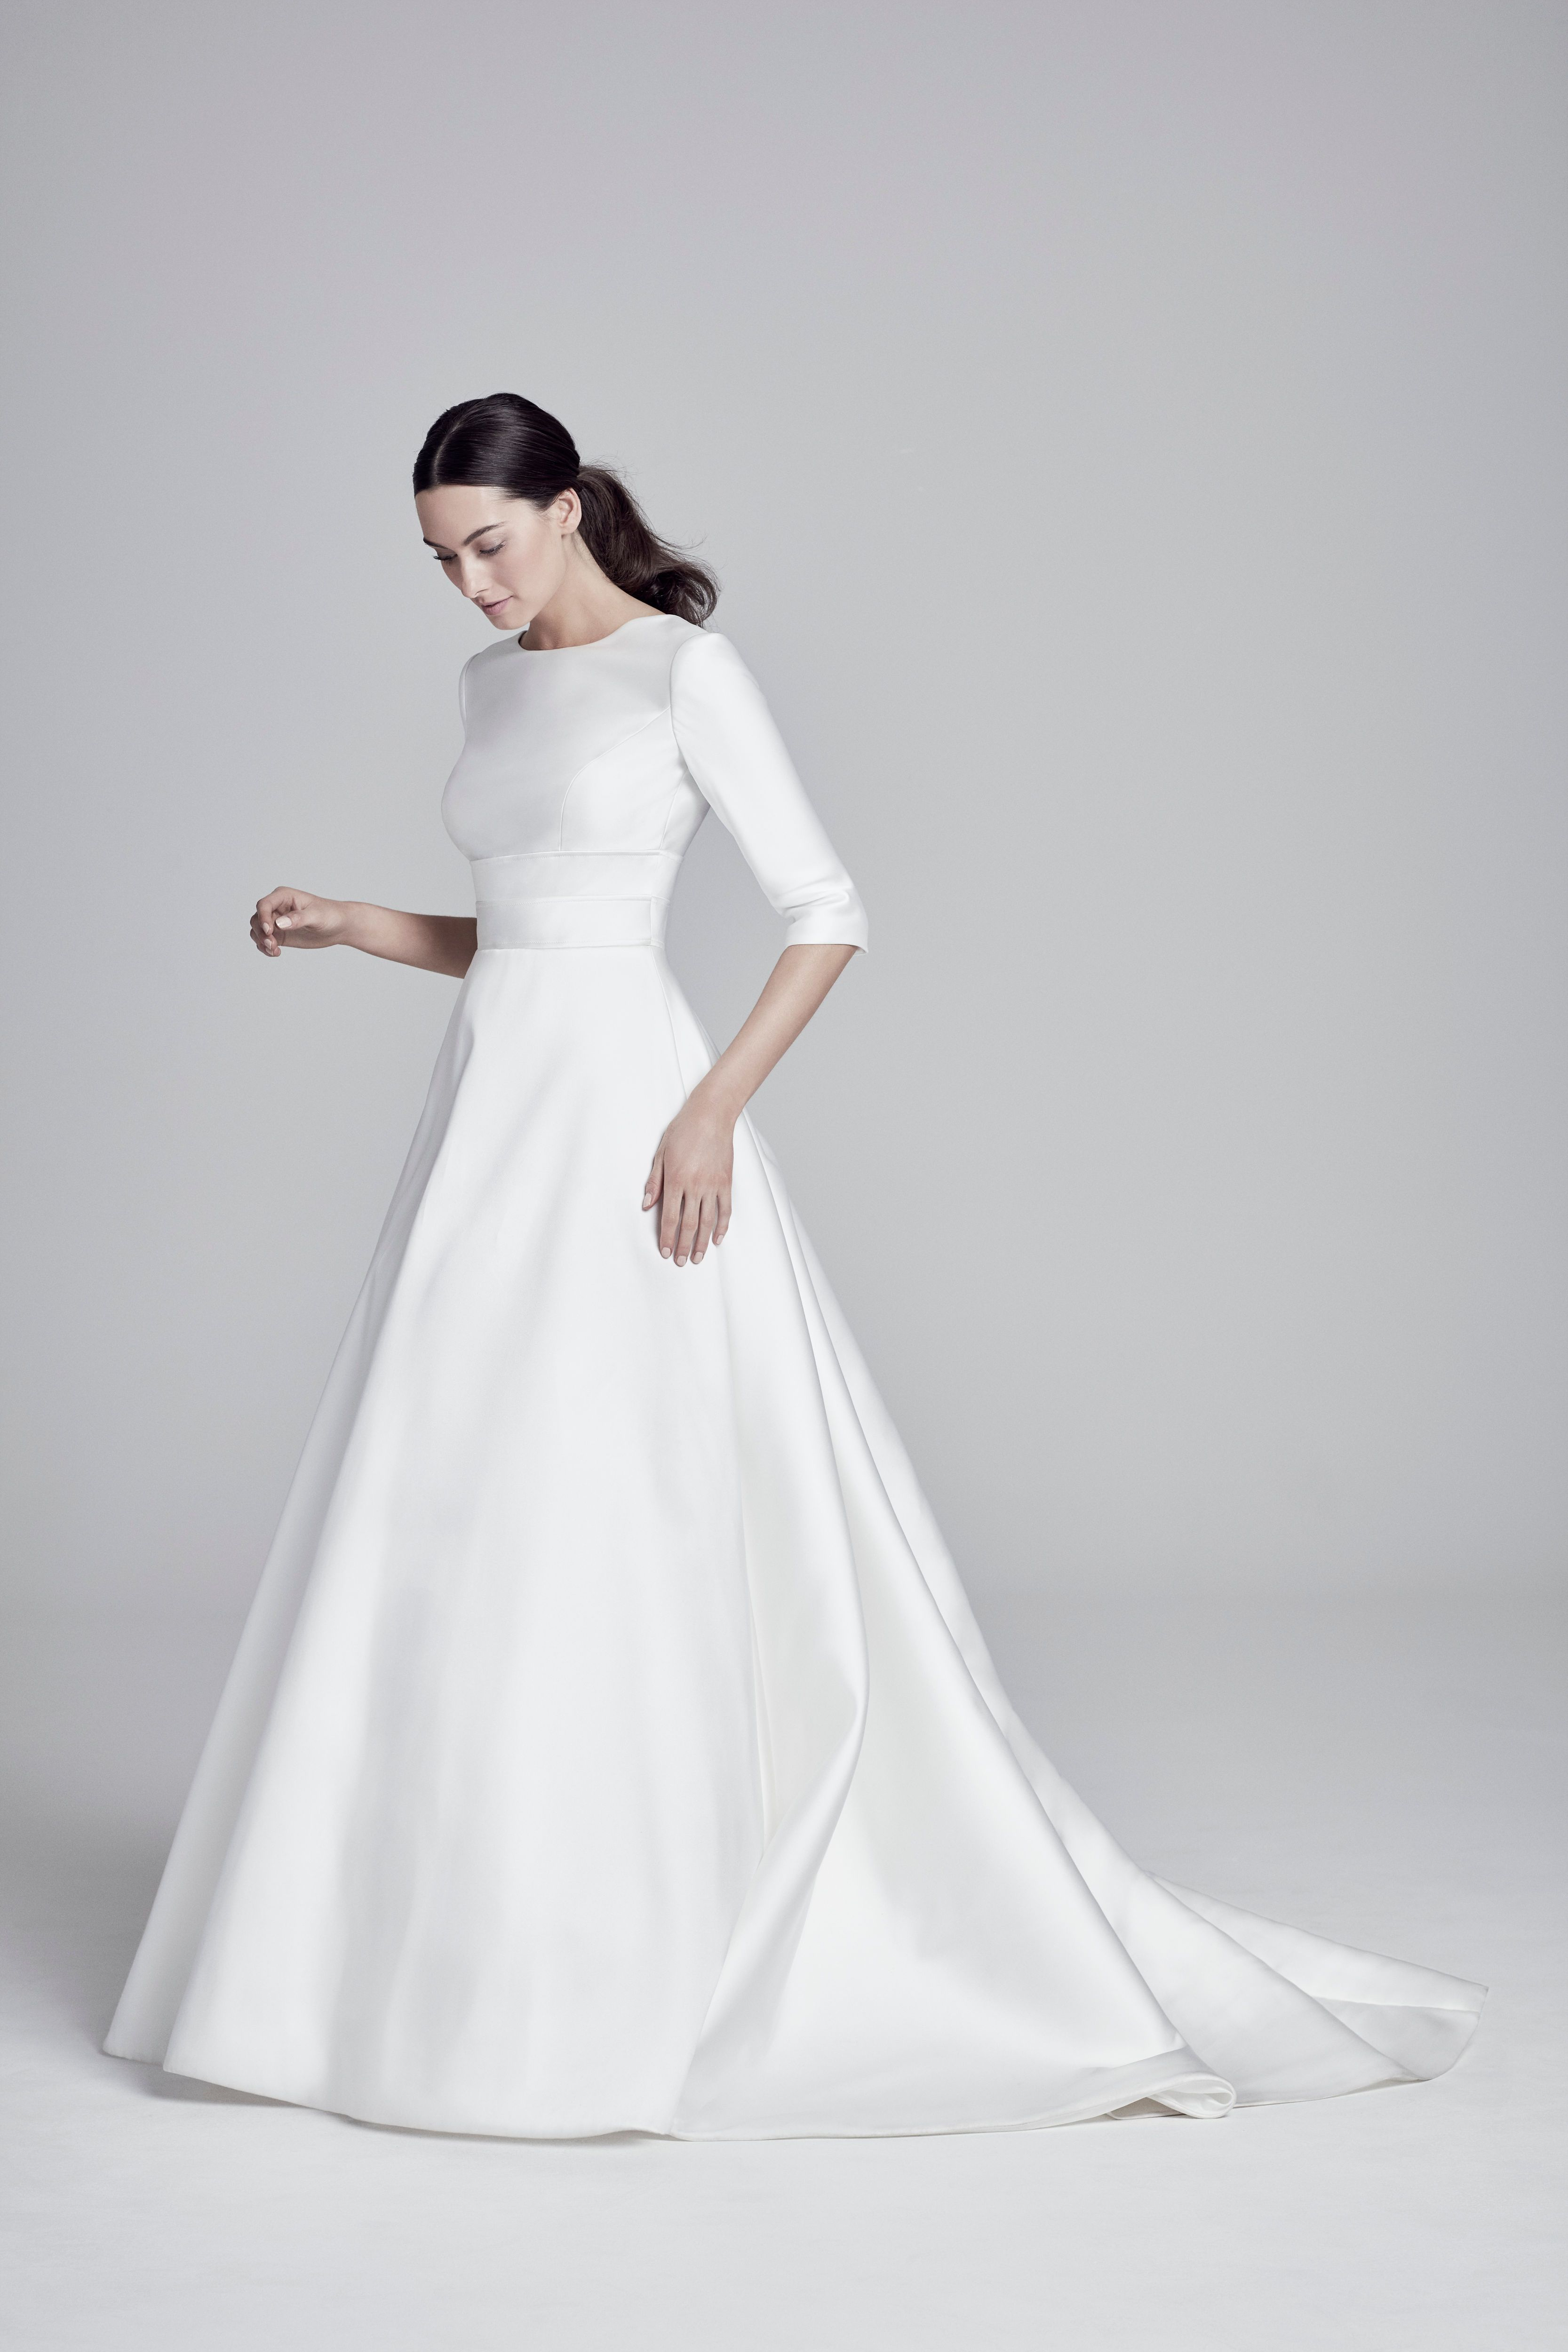 d70c8ad63205 The Wedding A-List - Suzanne Neville - The 2019 Collection - Layla ...